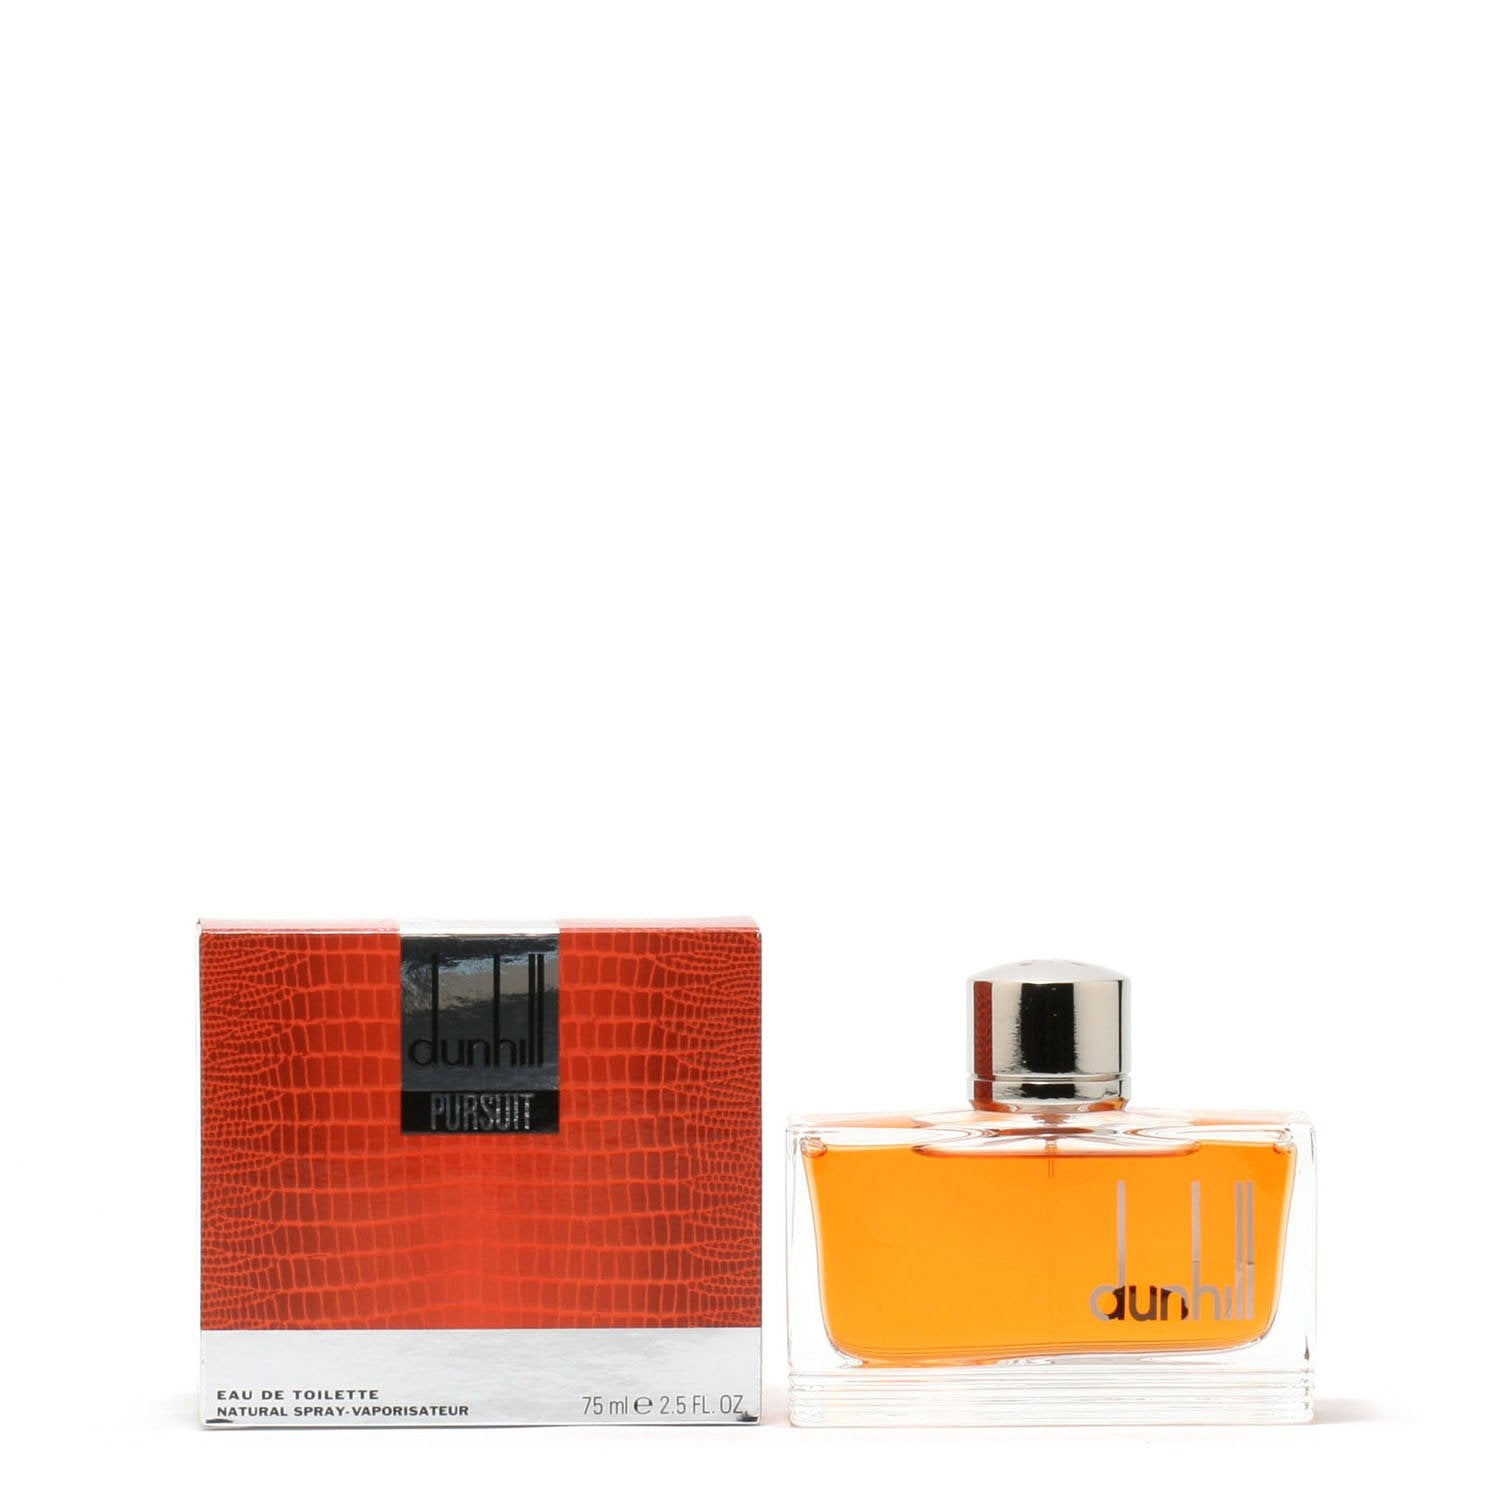 Cologne - DUNHILL PURSUIT FOR MEN - EAU DE TOILETTE SPRAY